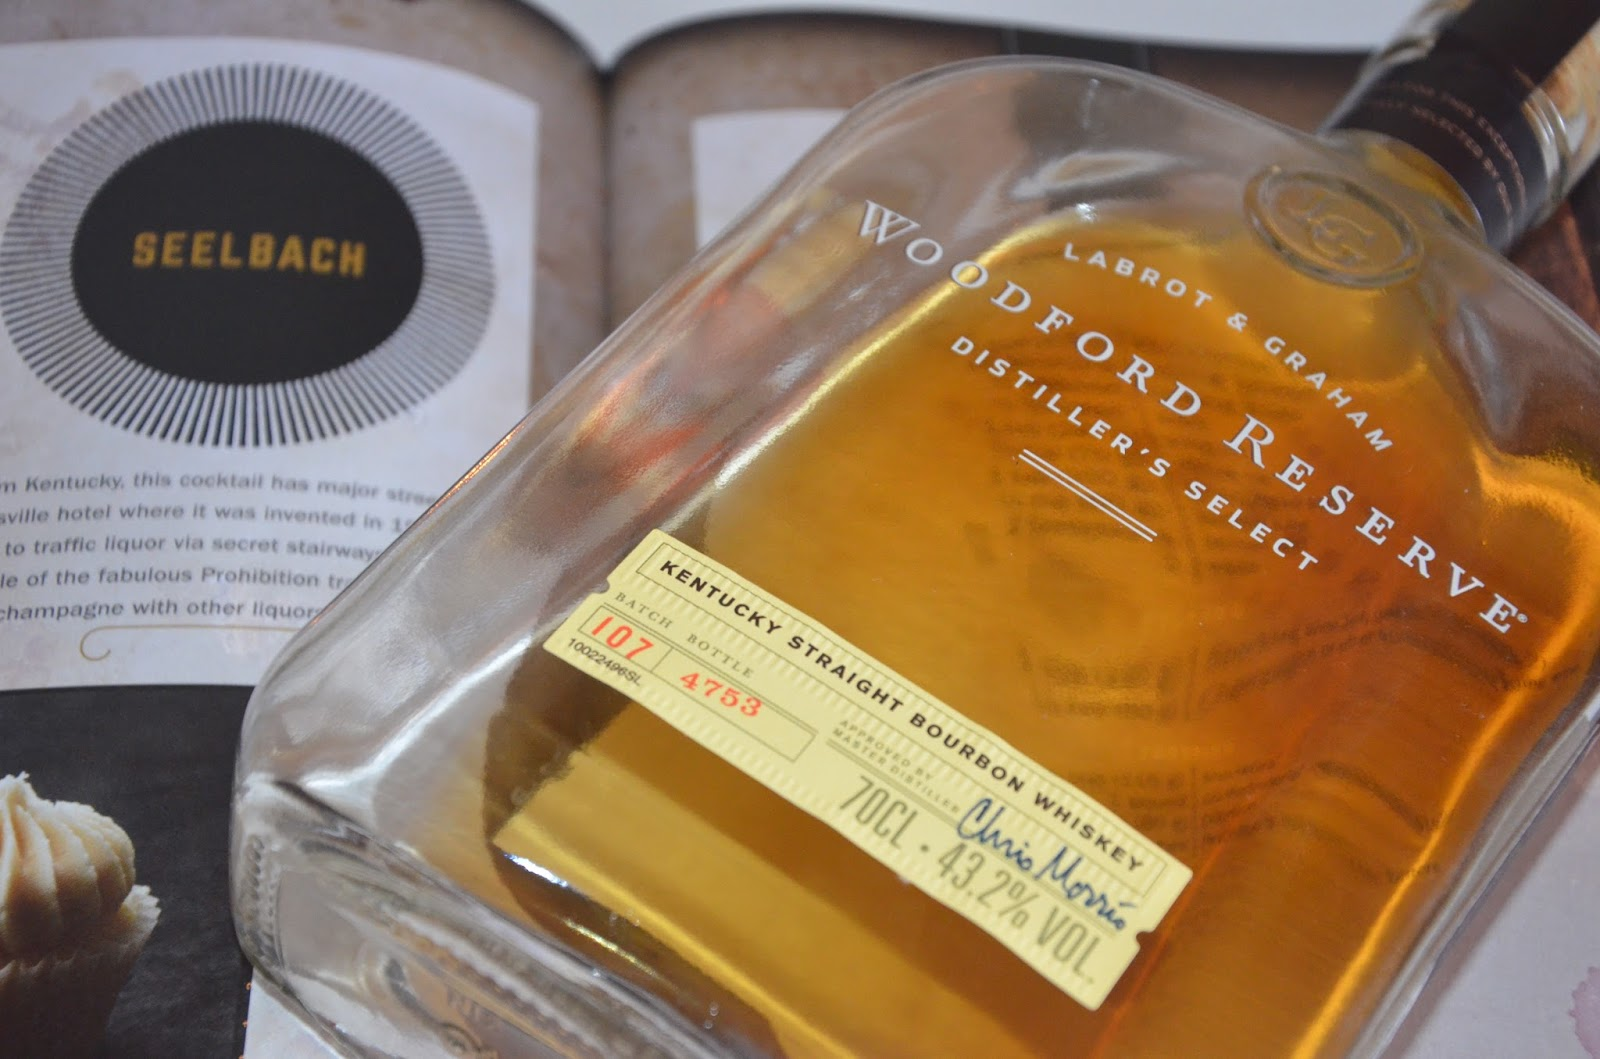 Woodford Reserve bottle of bourbon